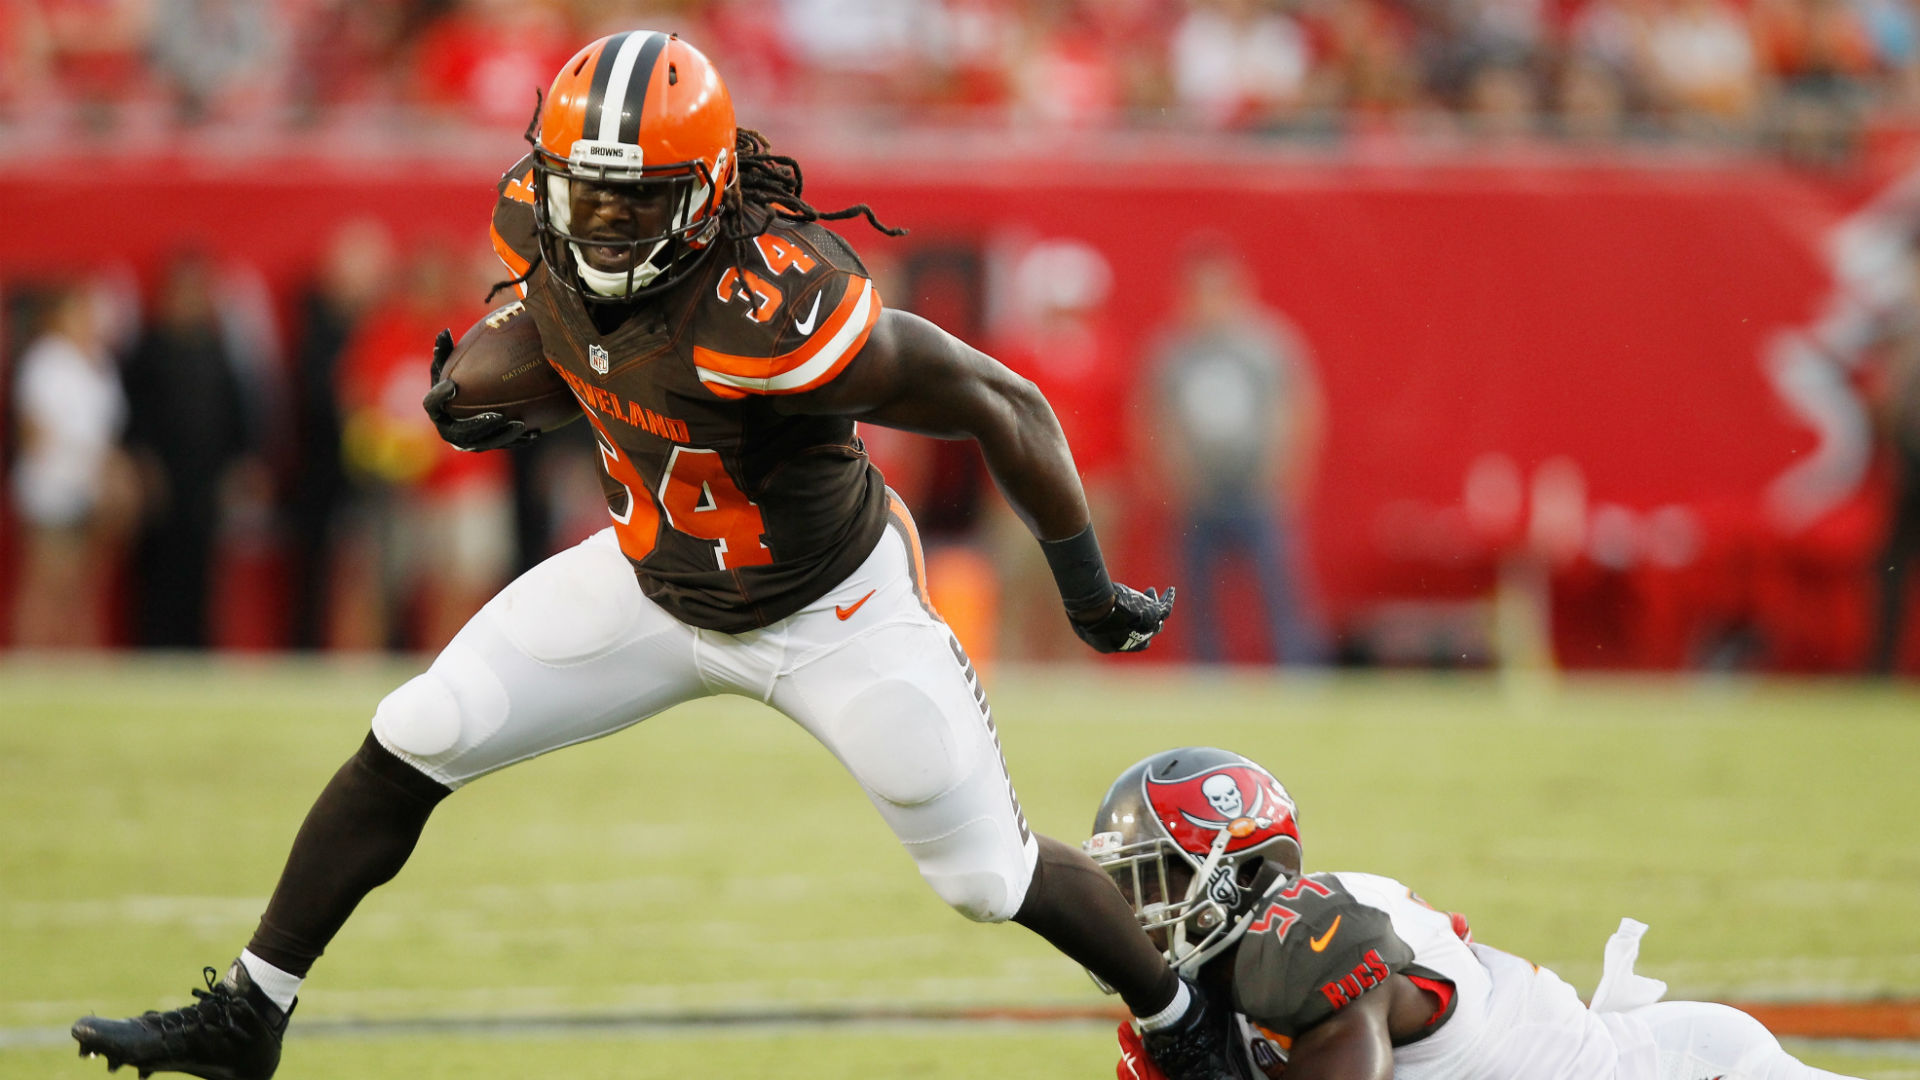 release date 09287 b82db Duke Johnson, Isaiah Crowell fantasy outlooks cloudy as ...